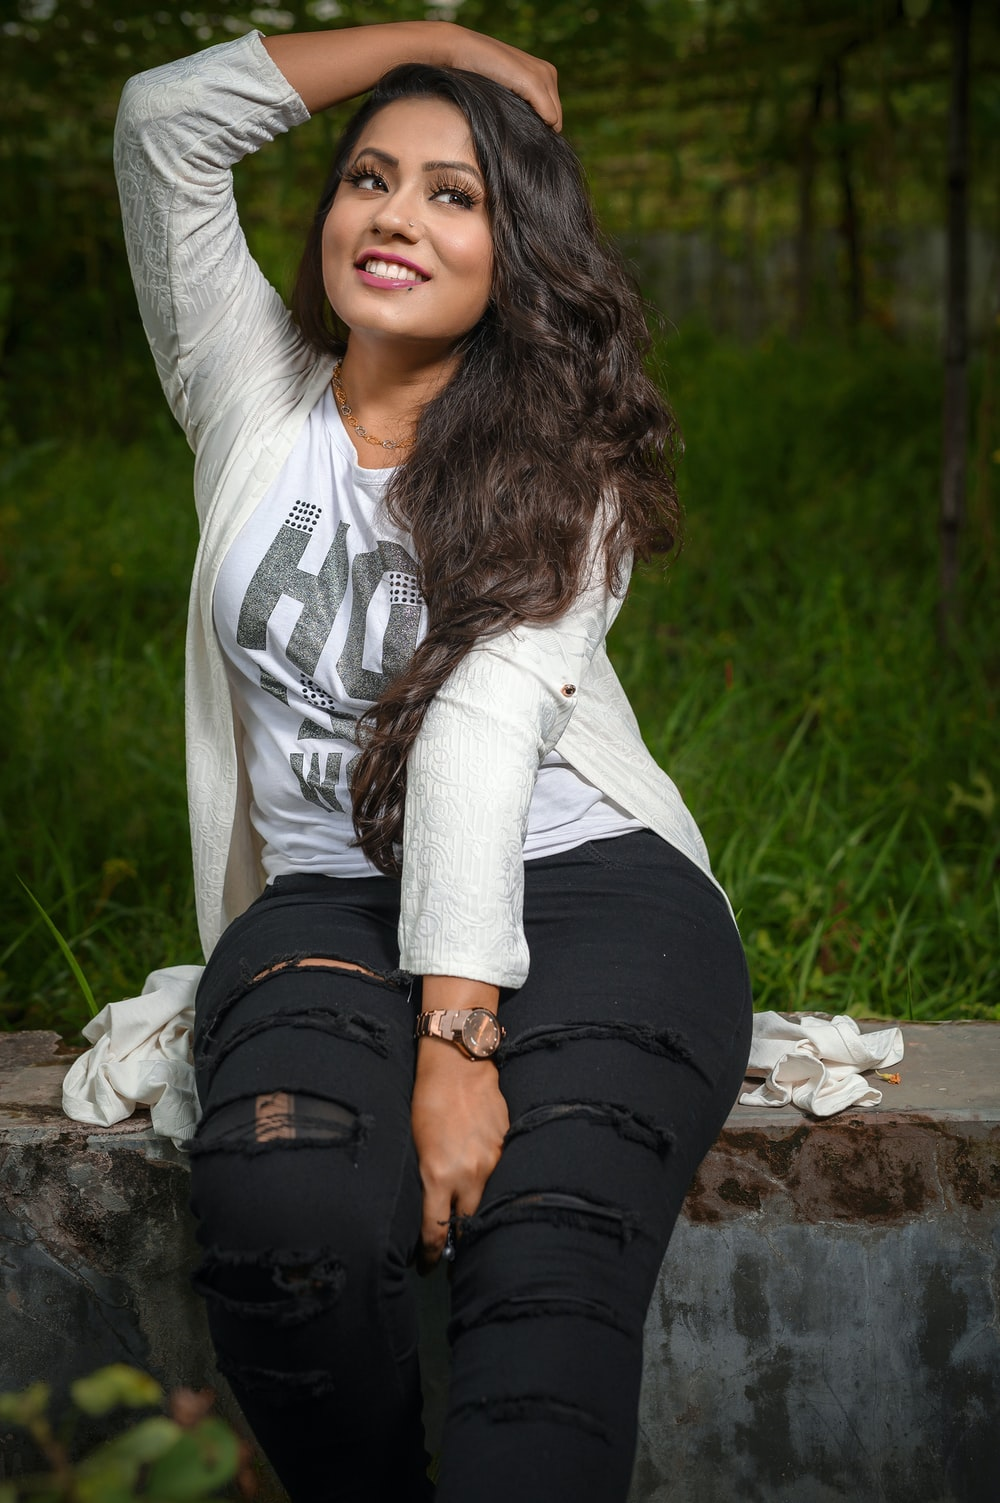 woman wearing white shirt and distressed black jeans